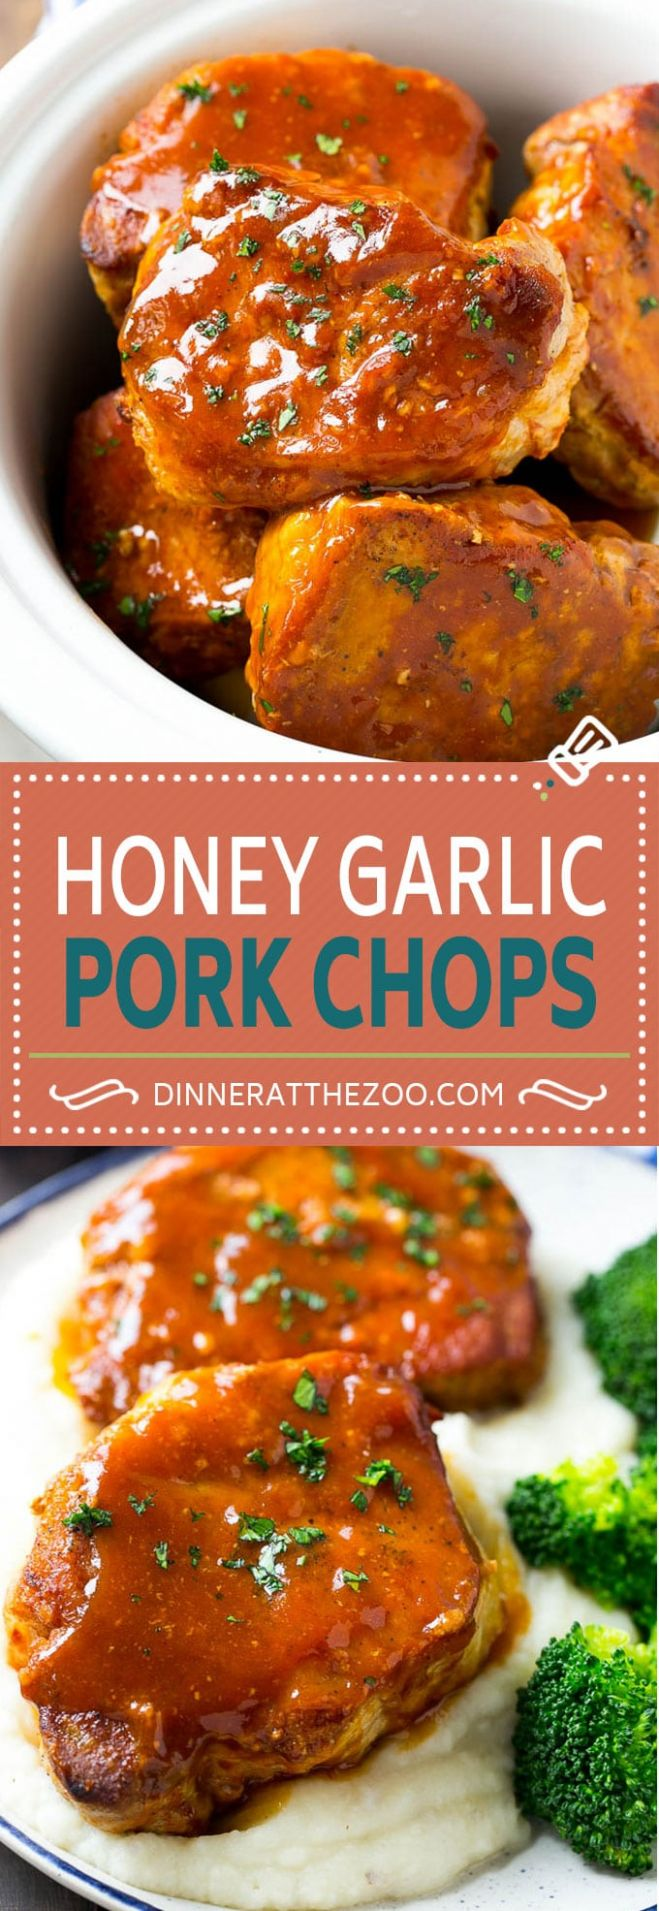 Honey Garlic Pork Chops (Slow Cooker) - Dinner at the Zoo - Recipes Pork Chops Crock Pot